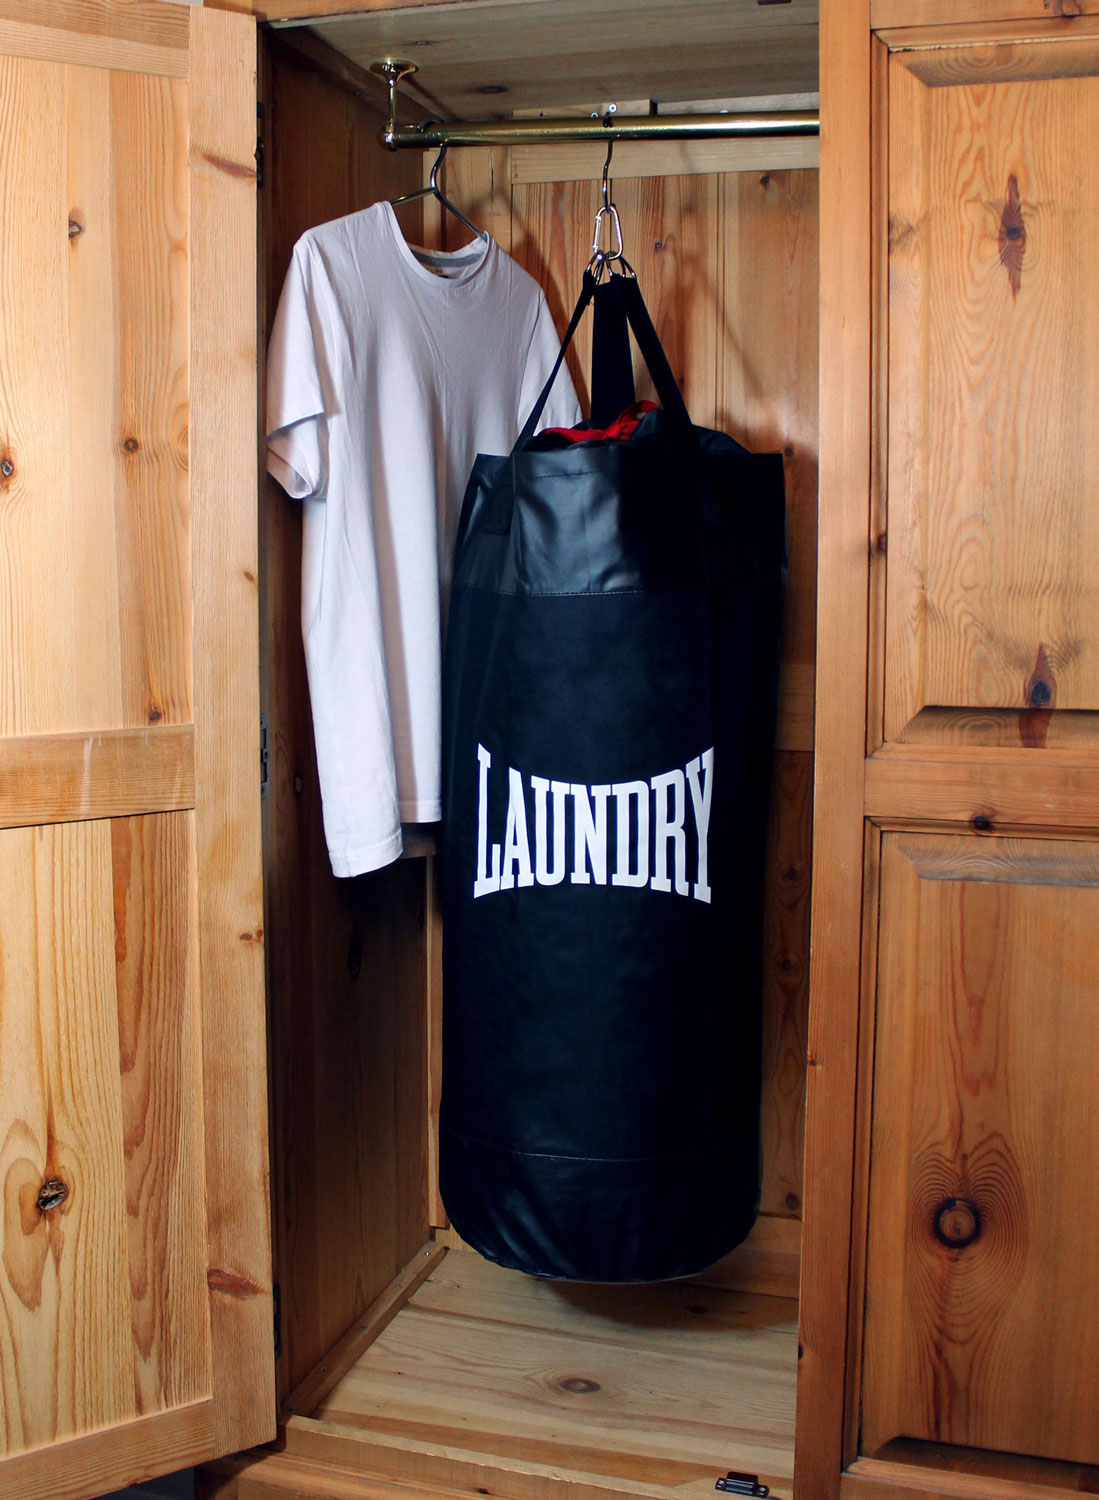 Punching Bag Laundry The Green Head